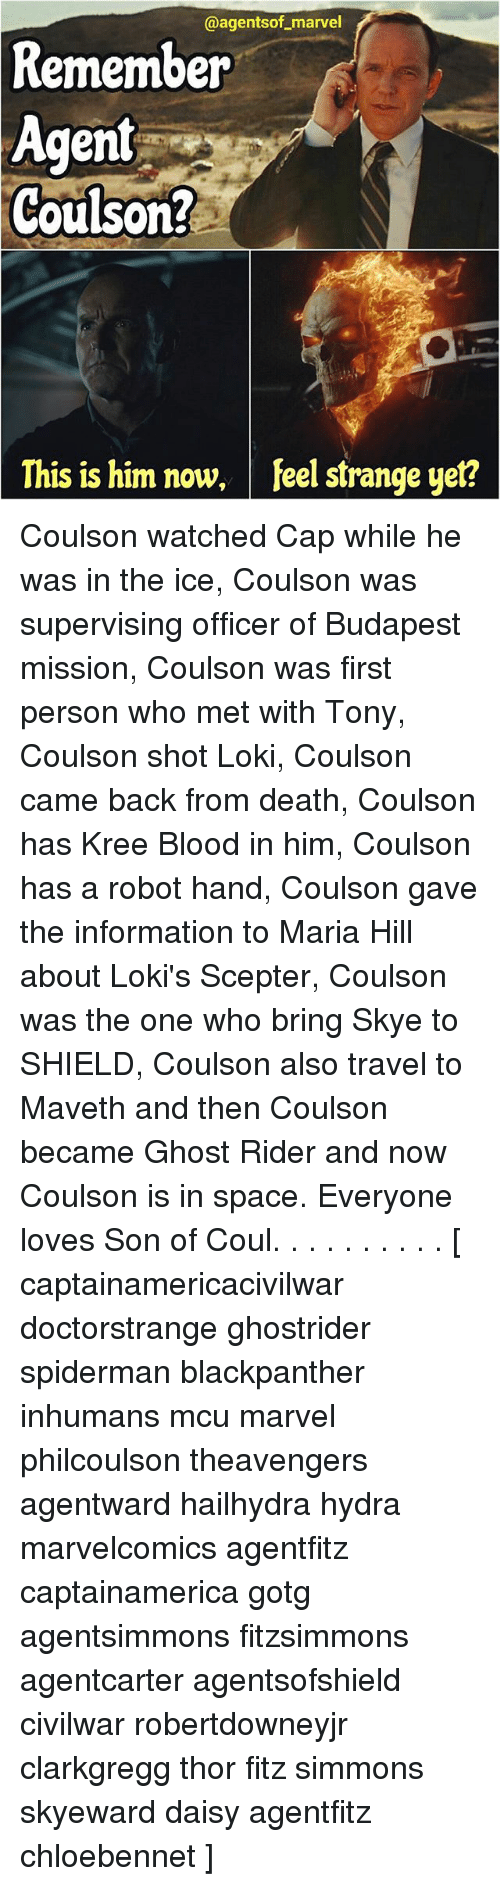 Ghost Rider , Memes, and Death: @agentsof marvel  Remember  Agent  Coulson?  This is him now, feel strange yet? Coulson watched Cap while he was in the ice, Coulson was supervising officer of Budapest mission, Coulson was first person who met with Tony, Coulson shot Loki, Coulson came back from death, Coulson has Kree Blood in him, Coulson has a robot hand, Coulson gave the information to Maria Hill about Loki's Scepter, Coulson was the one who bring Skye to SHIELD, Coulson also travel to Maveth and then Coulson became Ghost Rider and now Coulson is in space. Everyone loves Son of Coul. . . . . . . . . . [ captainamericacivilwar doctorstrange ghostrider spiderman blackpanther inhumans mcu marvel philcoulson theavengers agentward hailhydra hydra marvelcomics agentfitz captainamerica gotg agentsimmons fitzsimmons agentcarter agentsofshield civilwar robertdowneyjr clarkgregg thor fitz simmons skyeward daisy agentfitz chloebennet ]